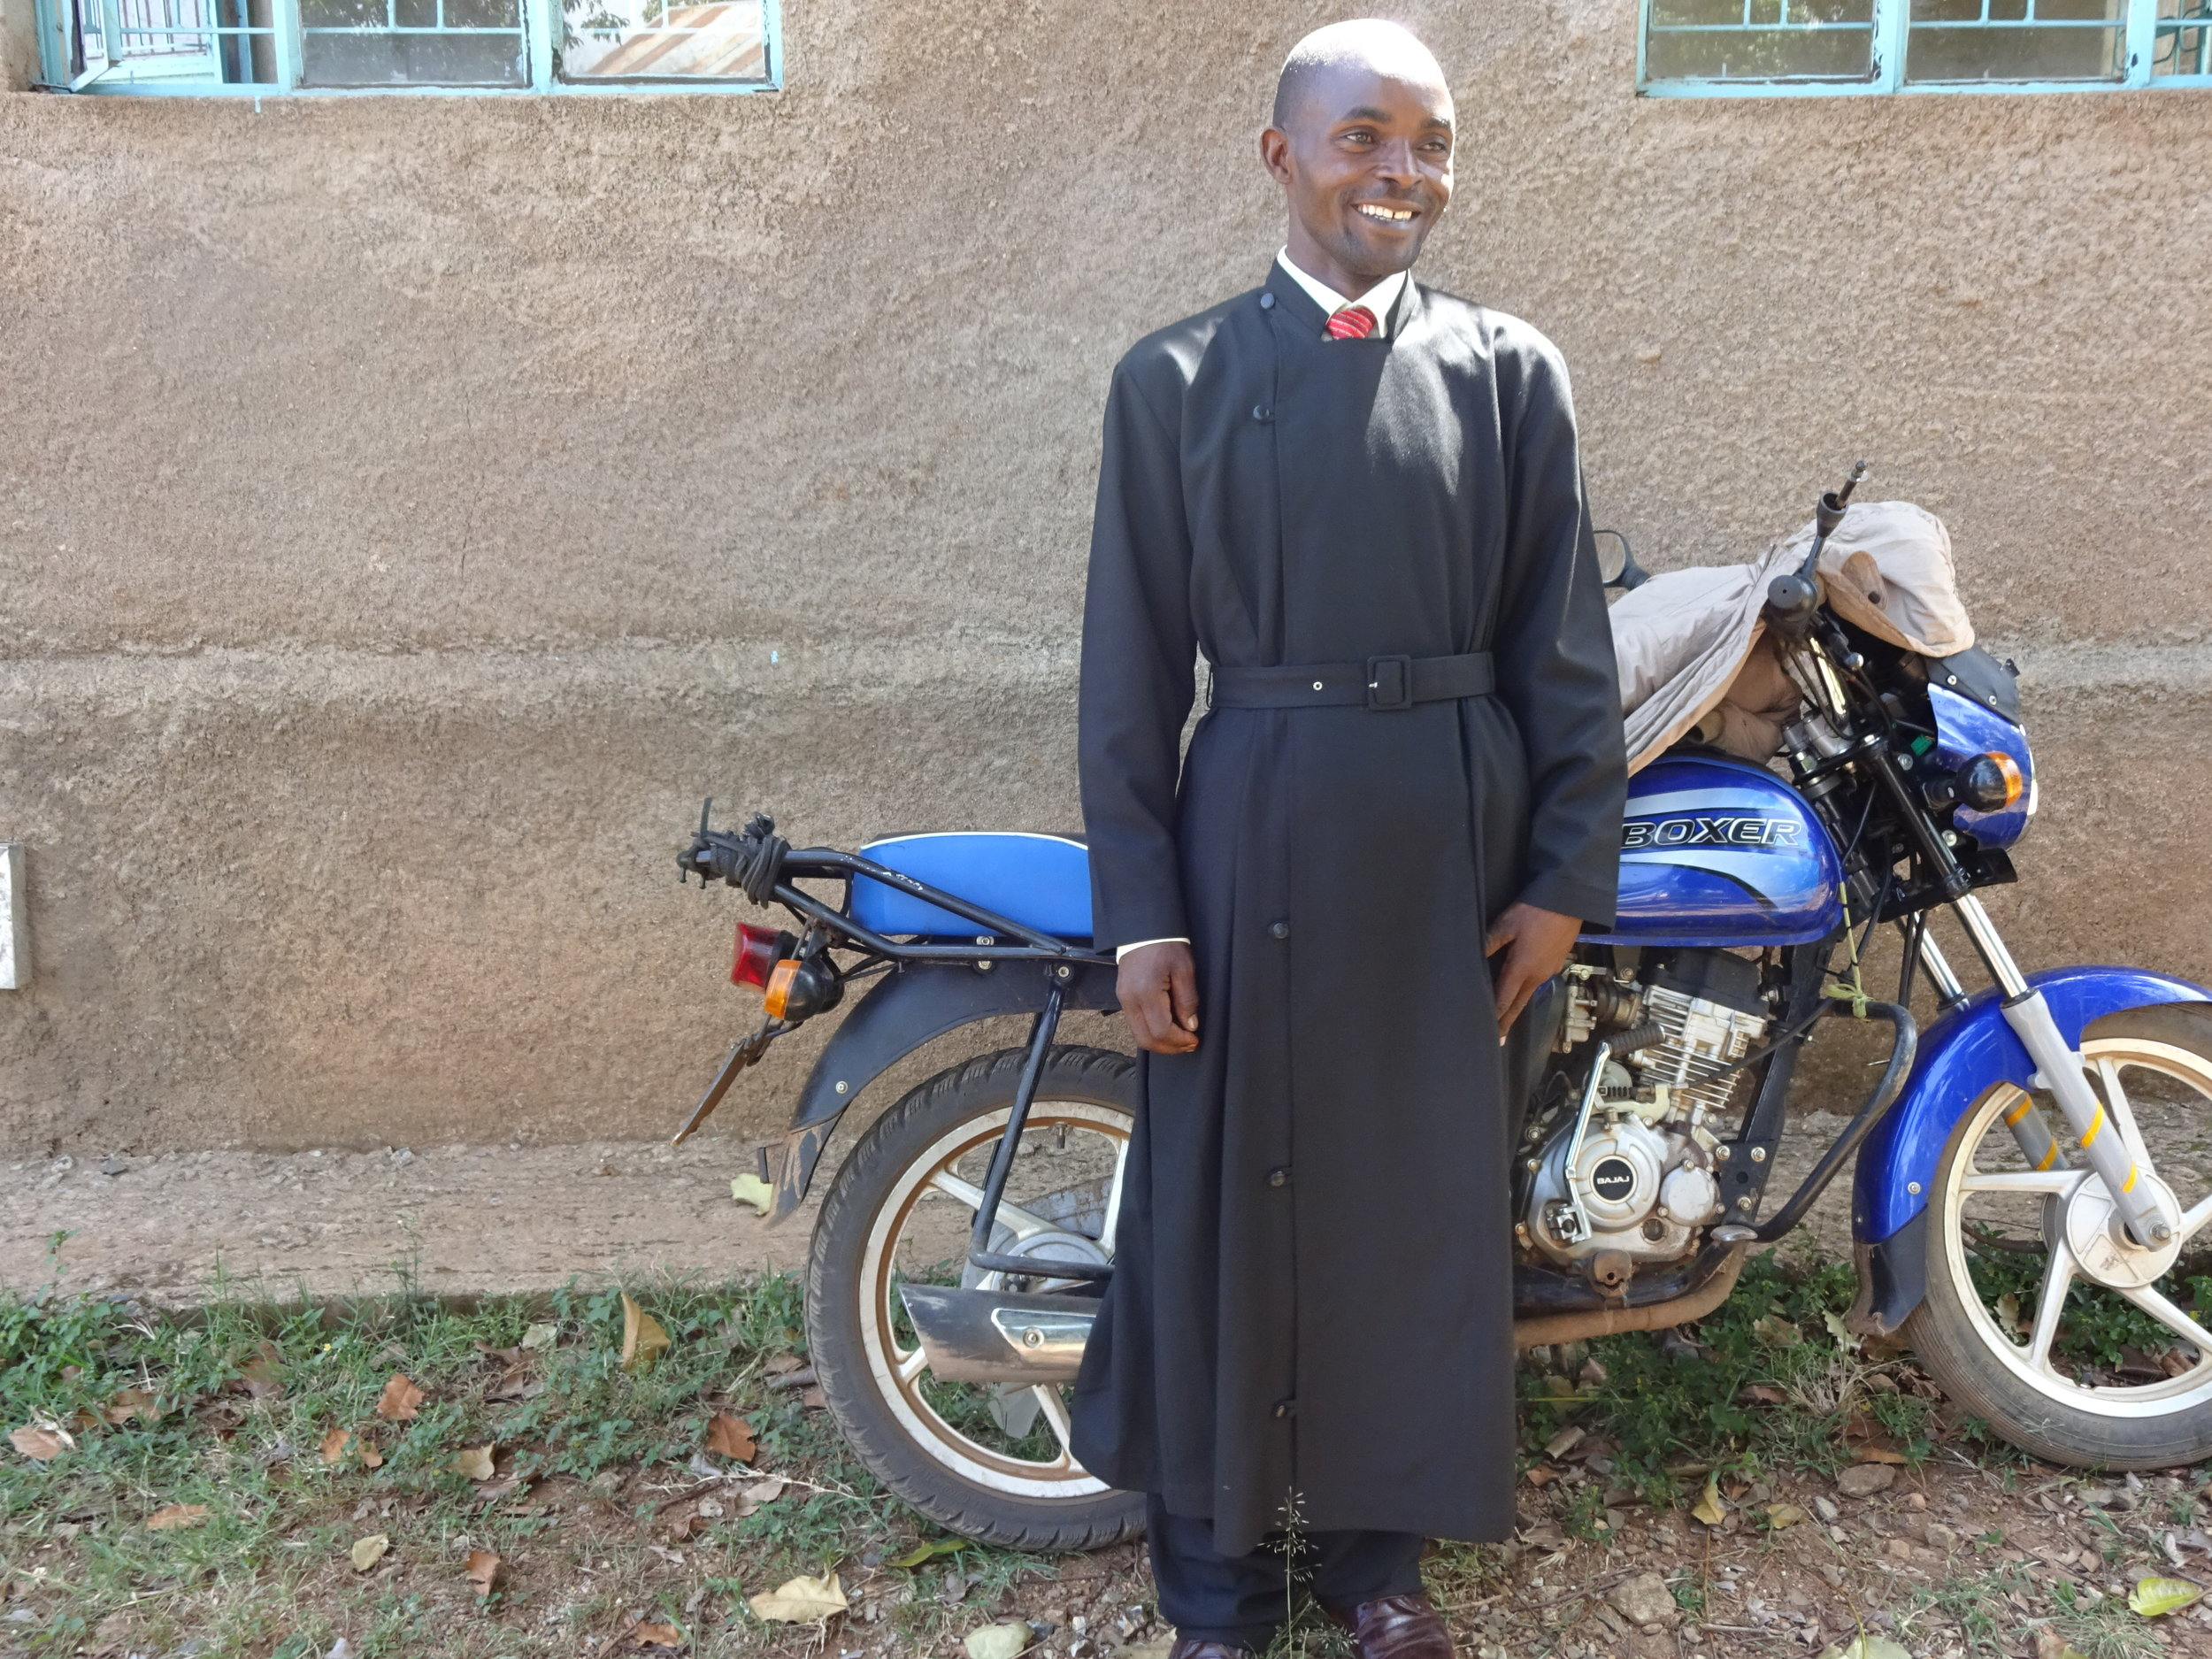 Youth Minister and Motorcycle